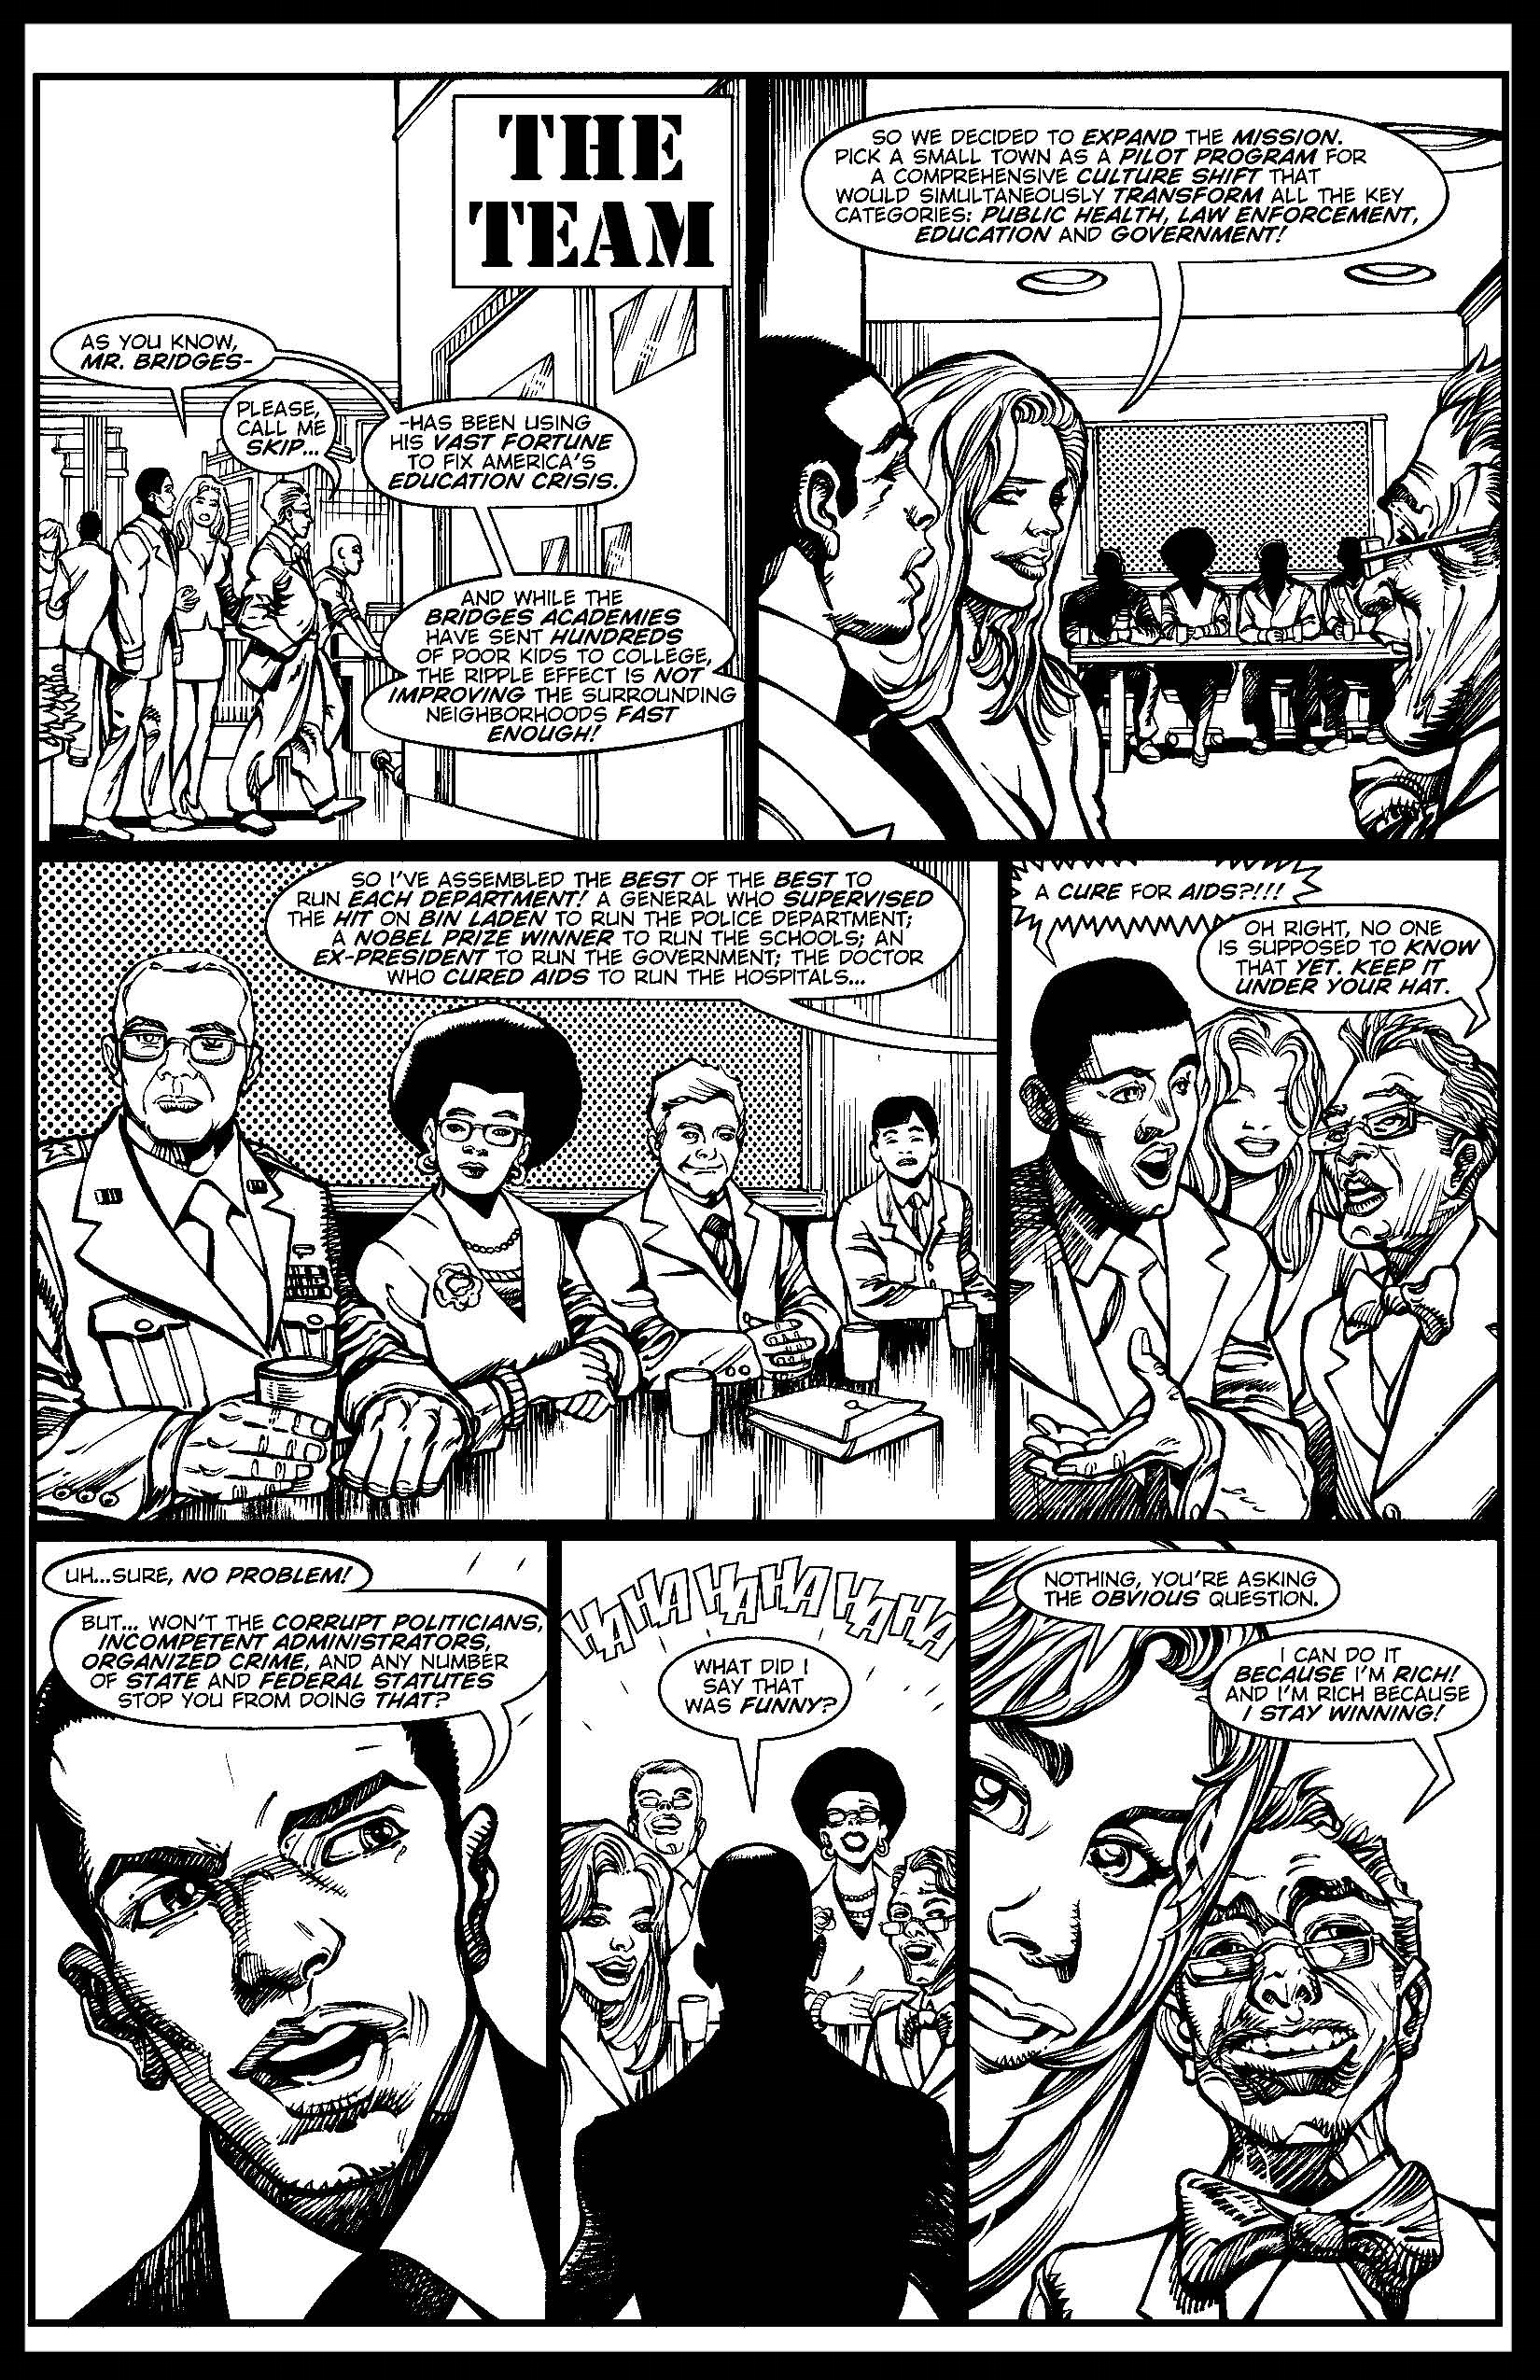 You Can't Handle The Truth #5 - Monthly Strip for Ebony - Pencils & Inks